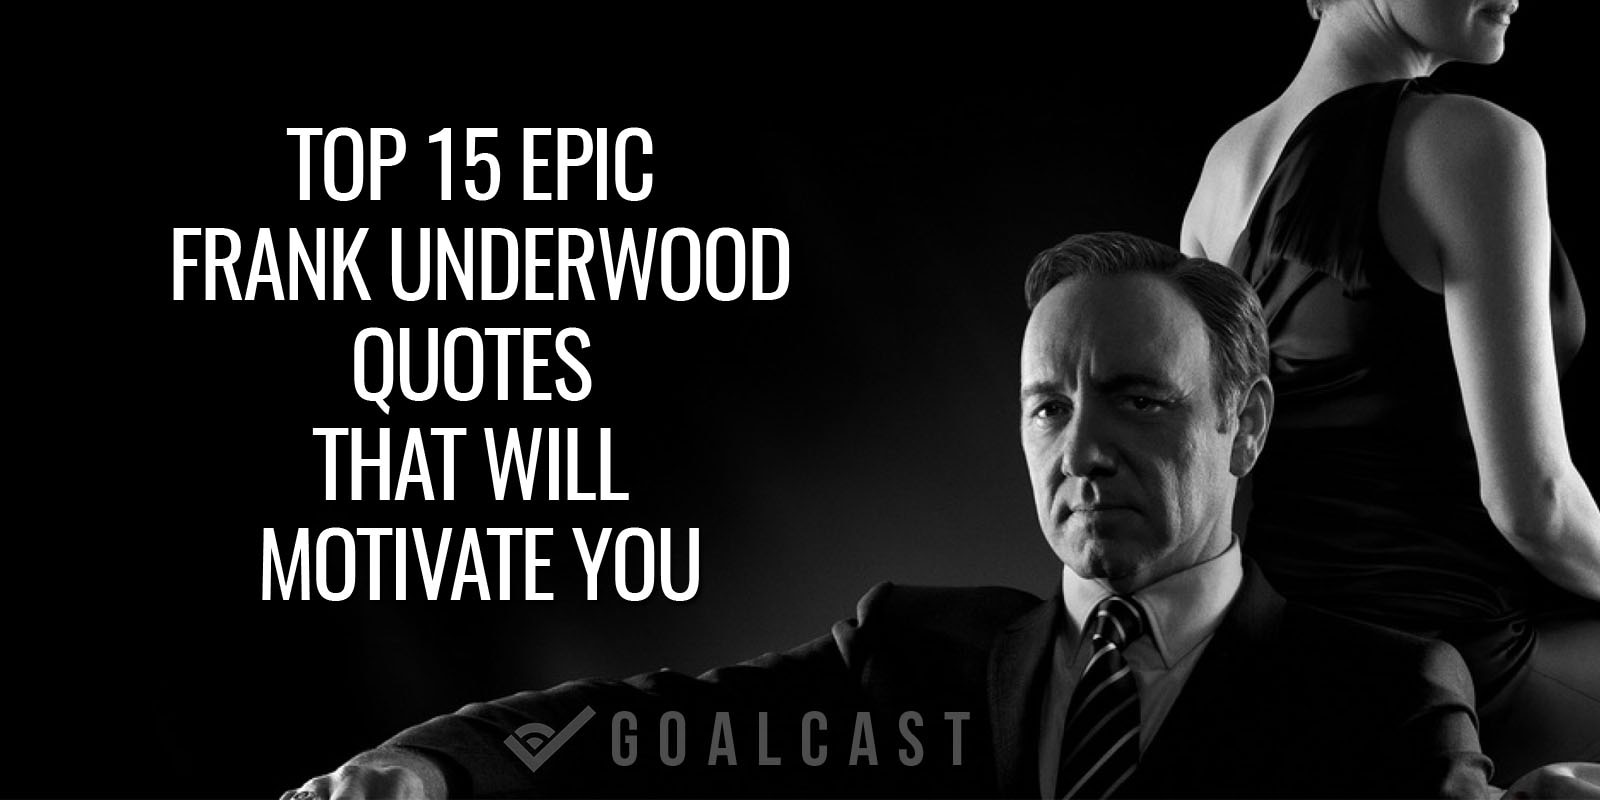 Top 15 Epic Frank Underwood Quotes That Will Motivate You